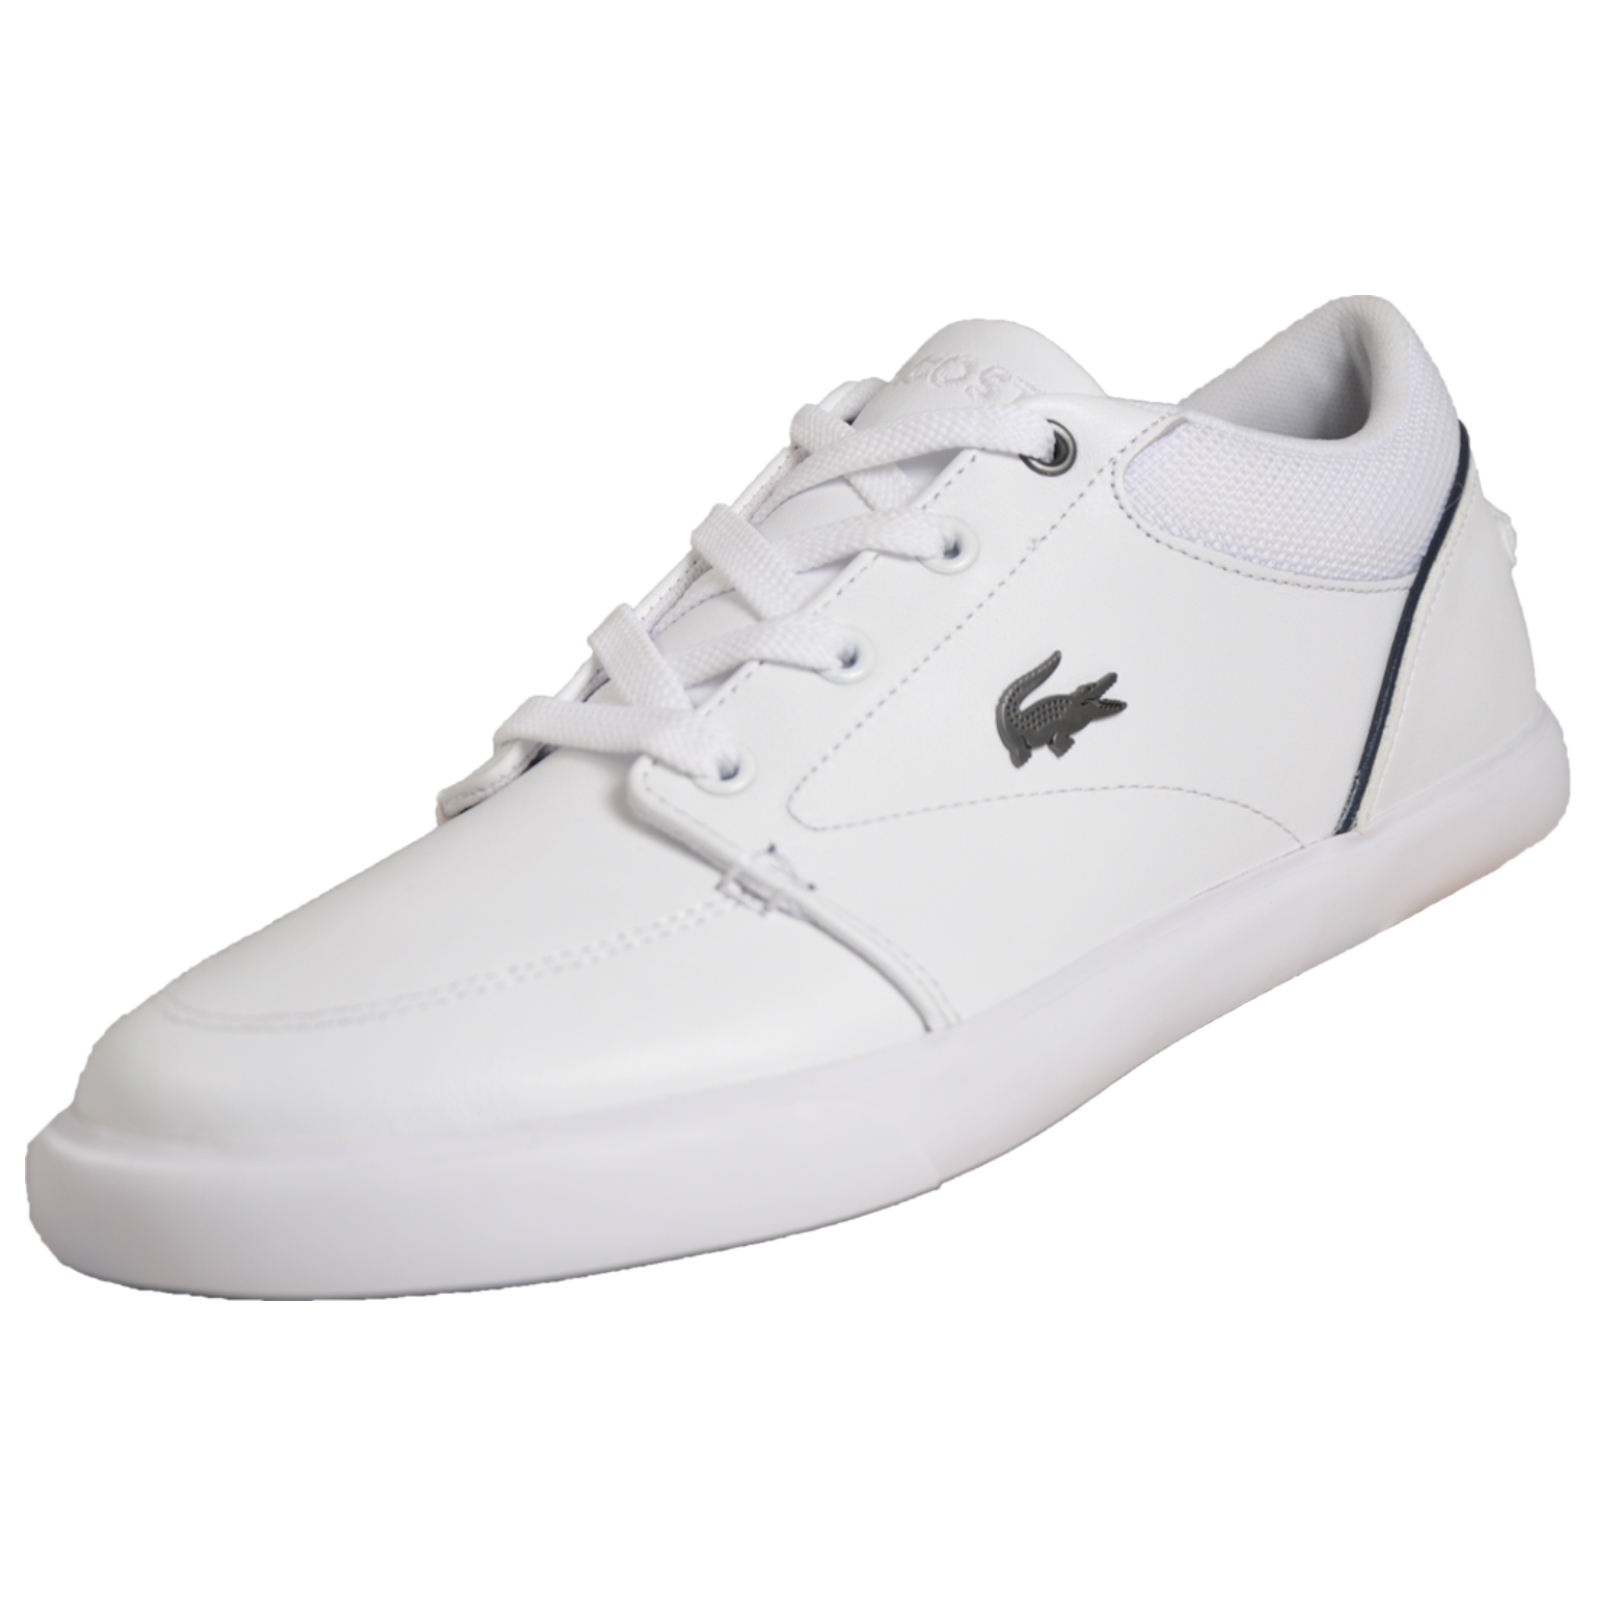 5613b4d967d0 Details about Lacoste Bayliss 318 Mens Classic Retro Vintage Casual Trainers  White B Grade